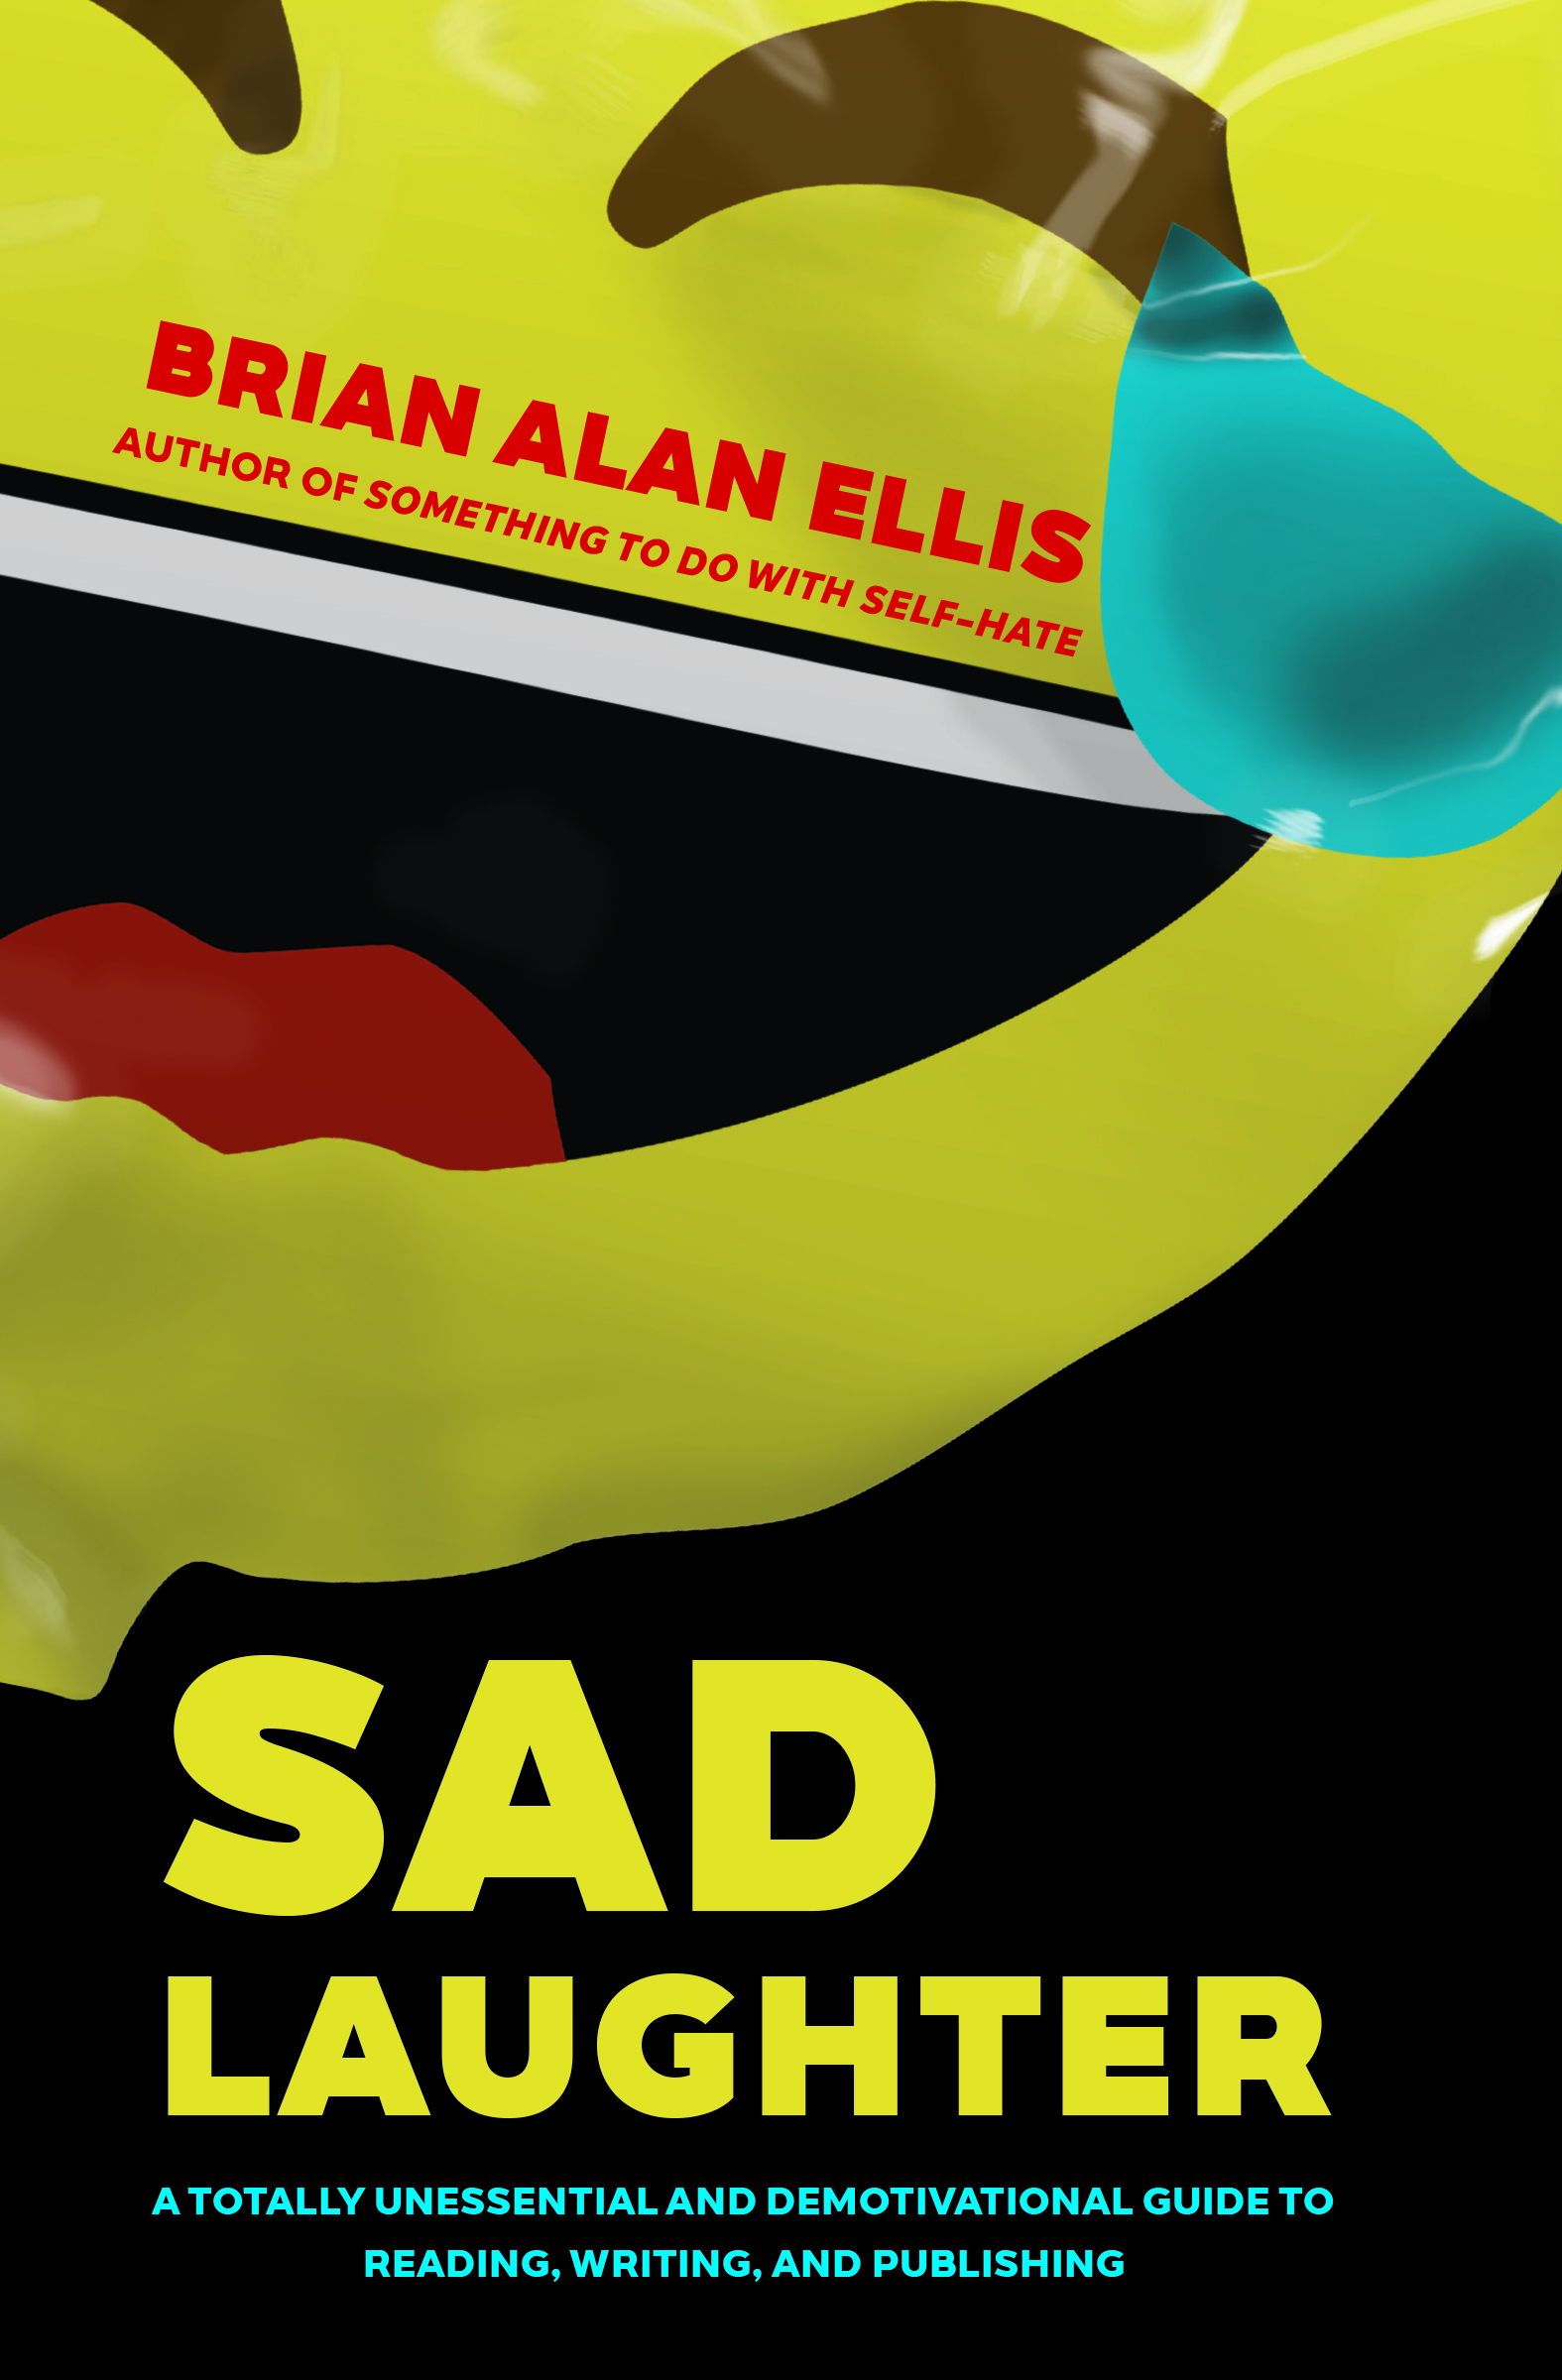 Sad Laughter by Brian Alan Ellis (Civil Coping Mechanisms, October 2018)